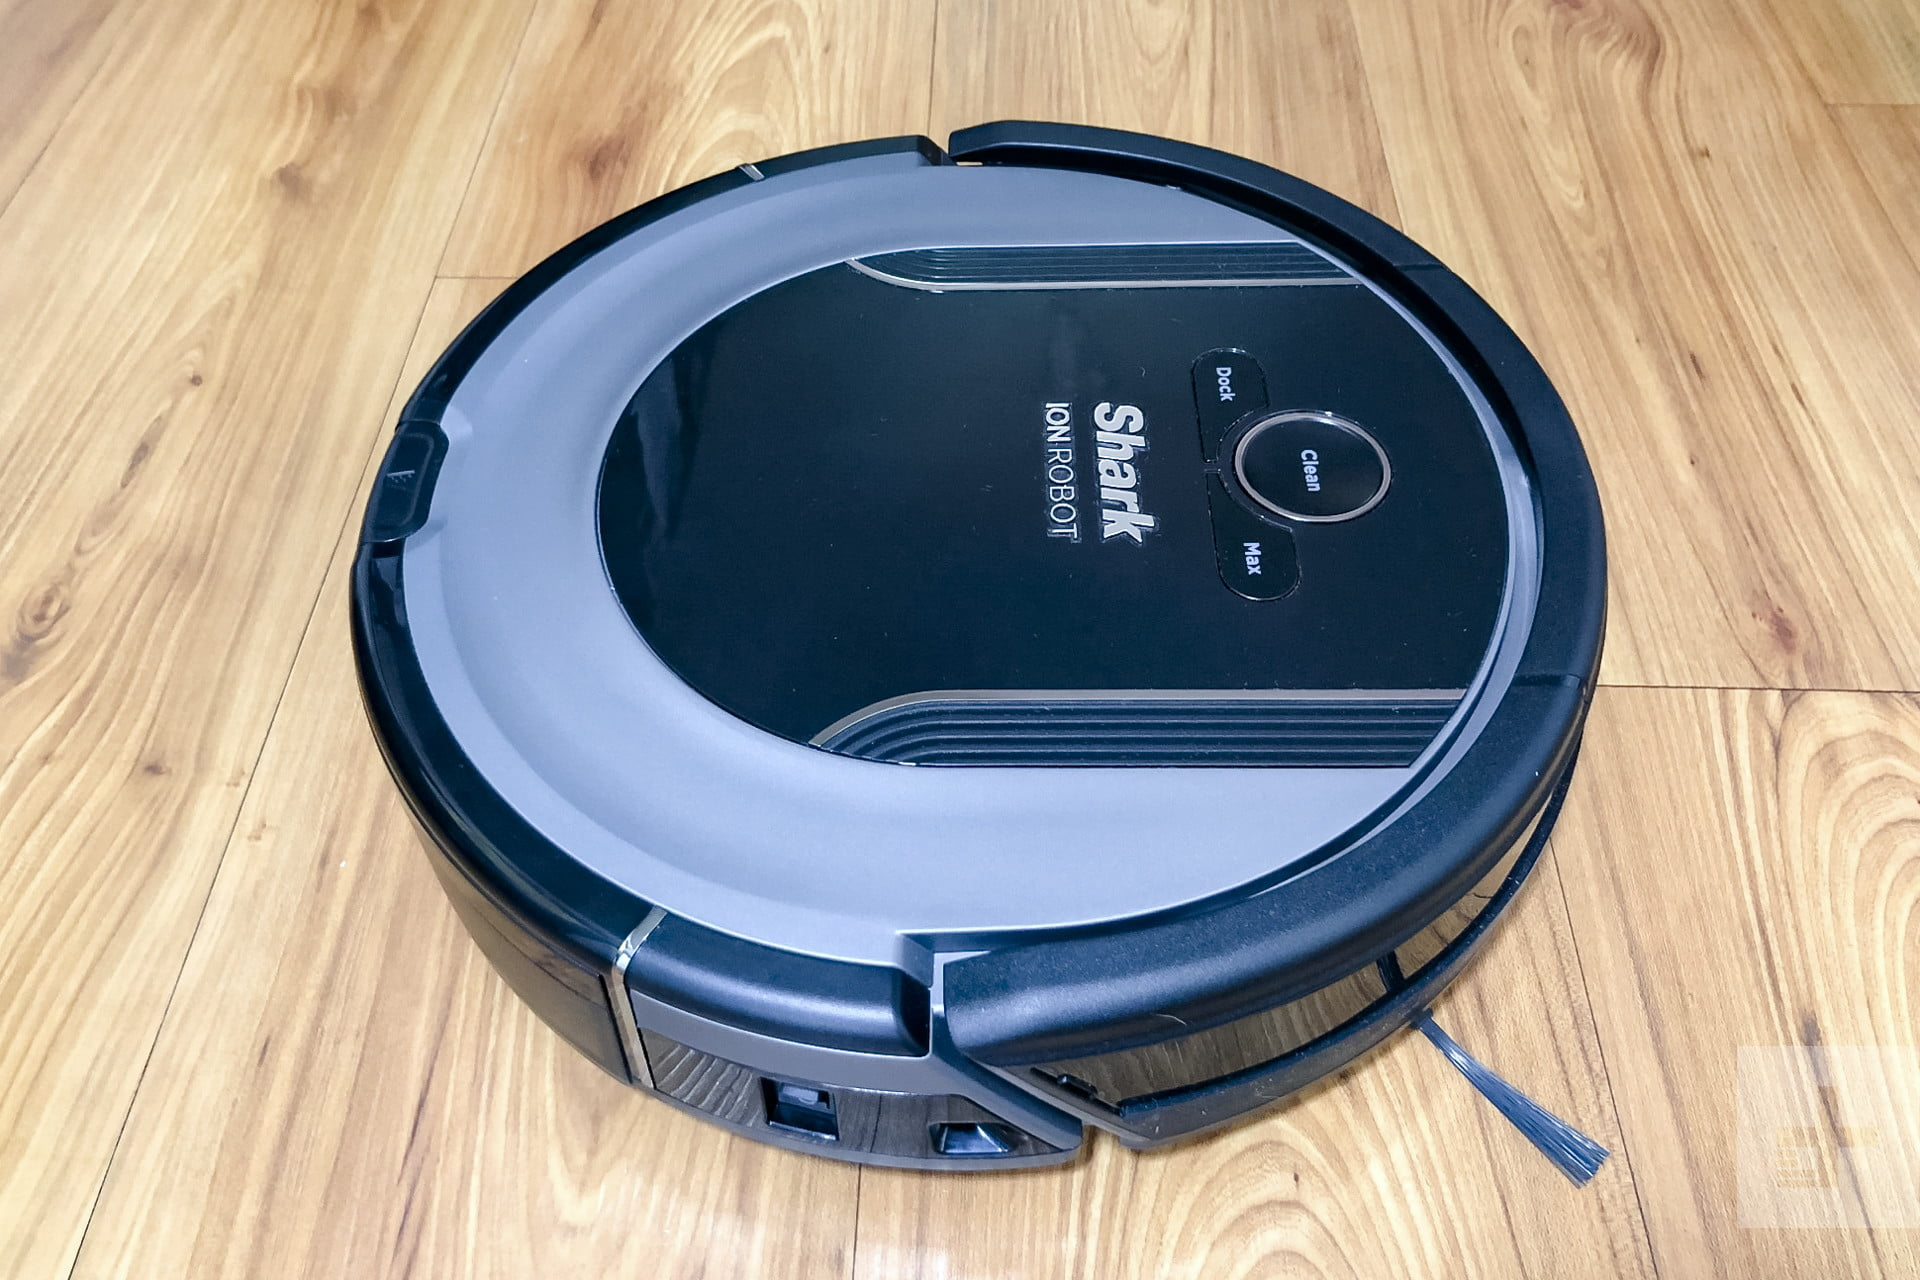 97e4339c8fc3 Shark ION Robot Vacuum Cleaning System S87 Review